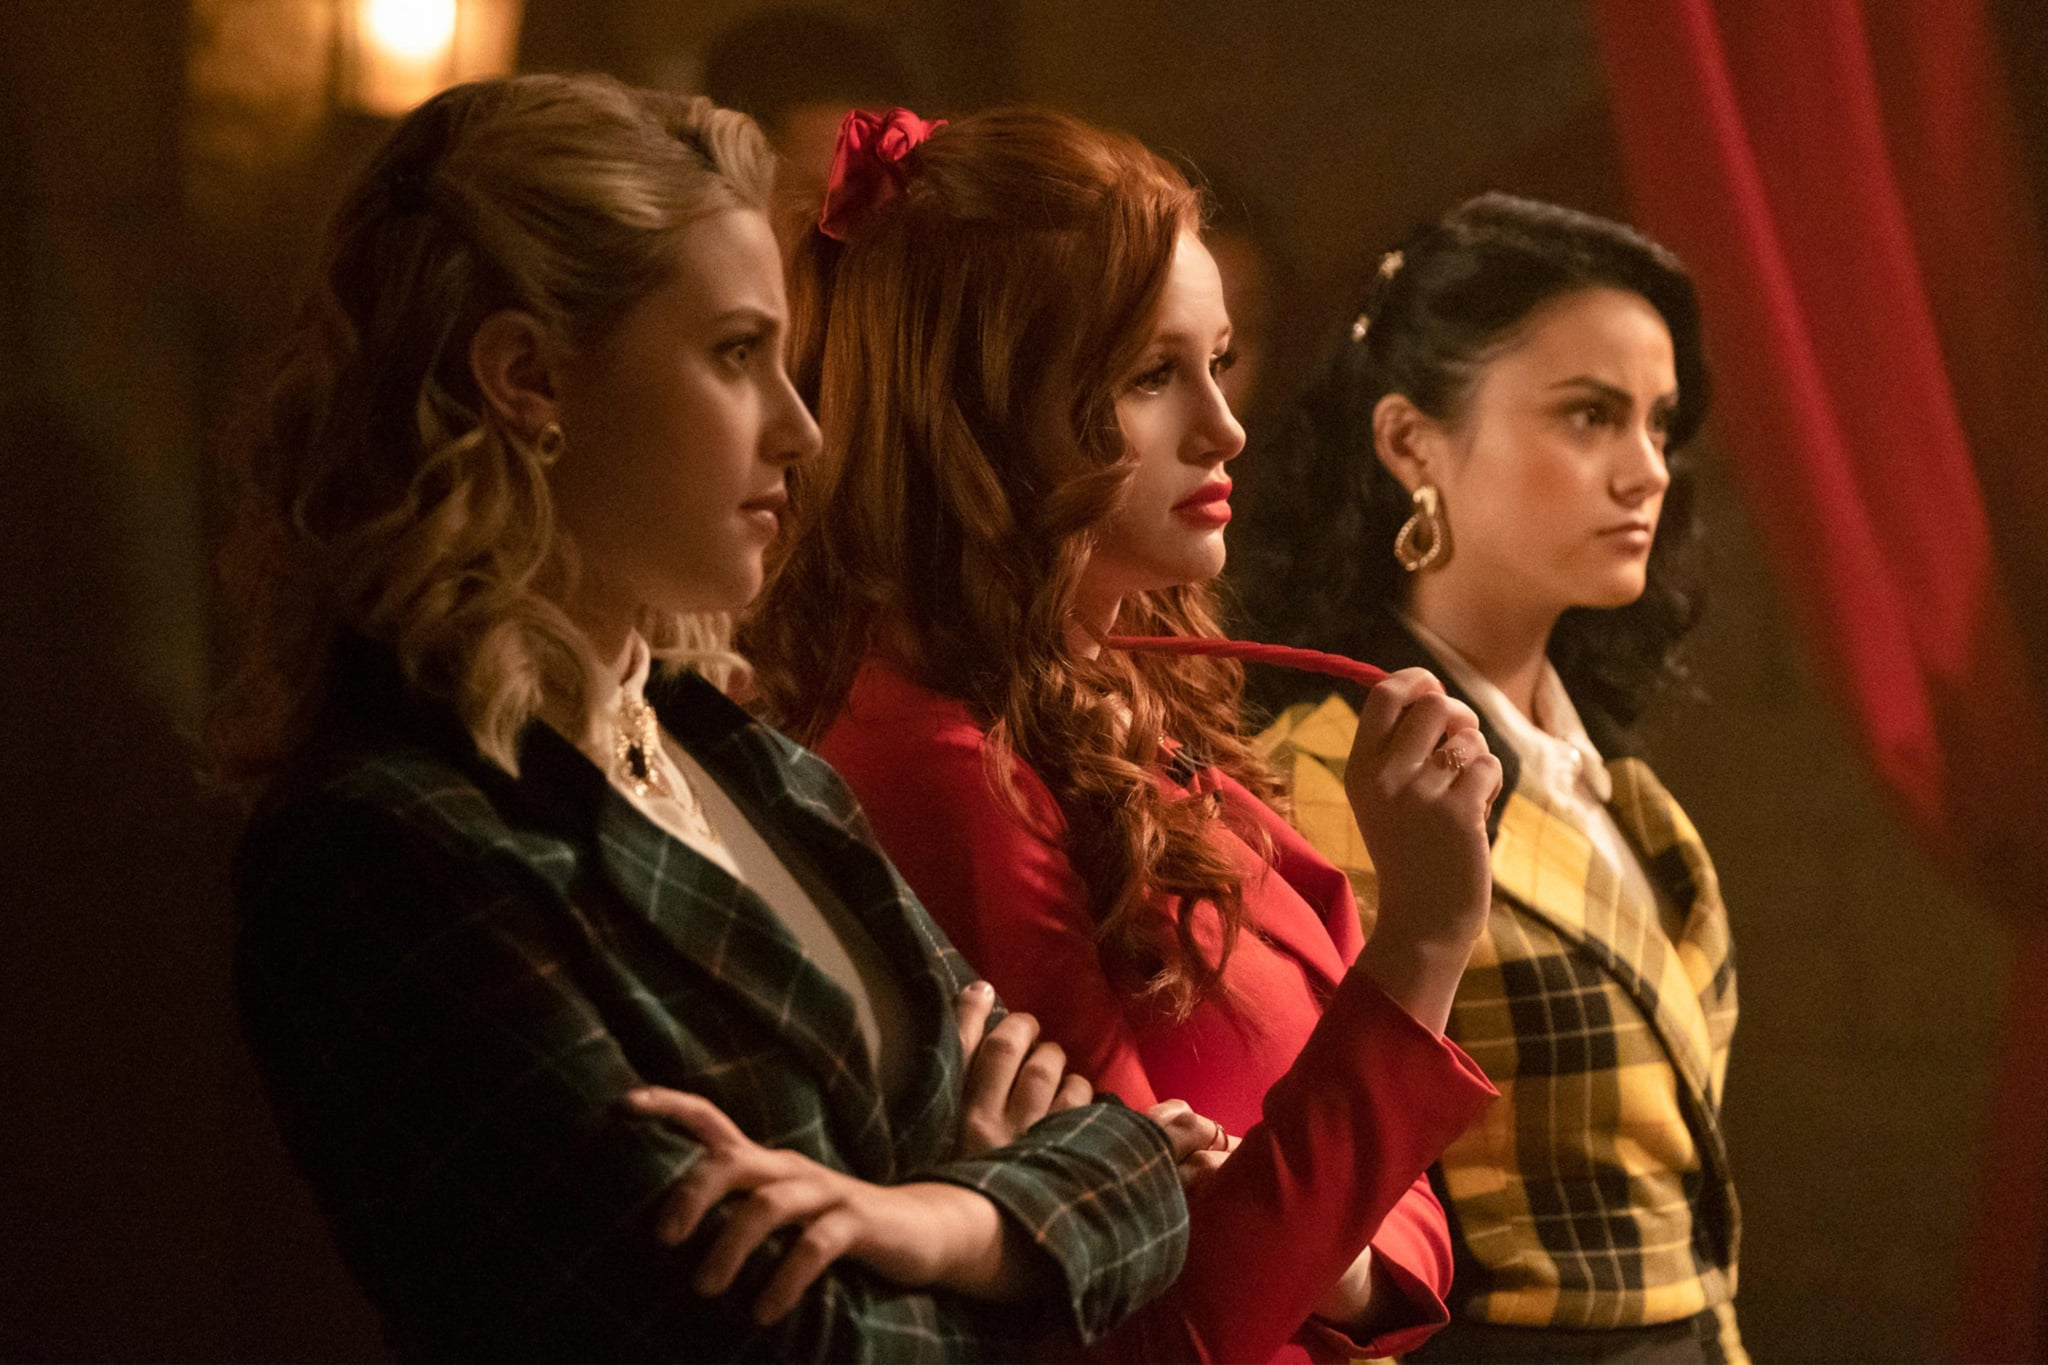 RIVERDALE, from left: Lili Reinhart, Madelaine Petsch, Camila Mendes, 'Chapter Fifty-One: Big Fun', (Season 3, ep. 316, aired March 20, 2019). photo: Katie Yu / The CW / courtesy Everett Collection